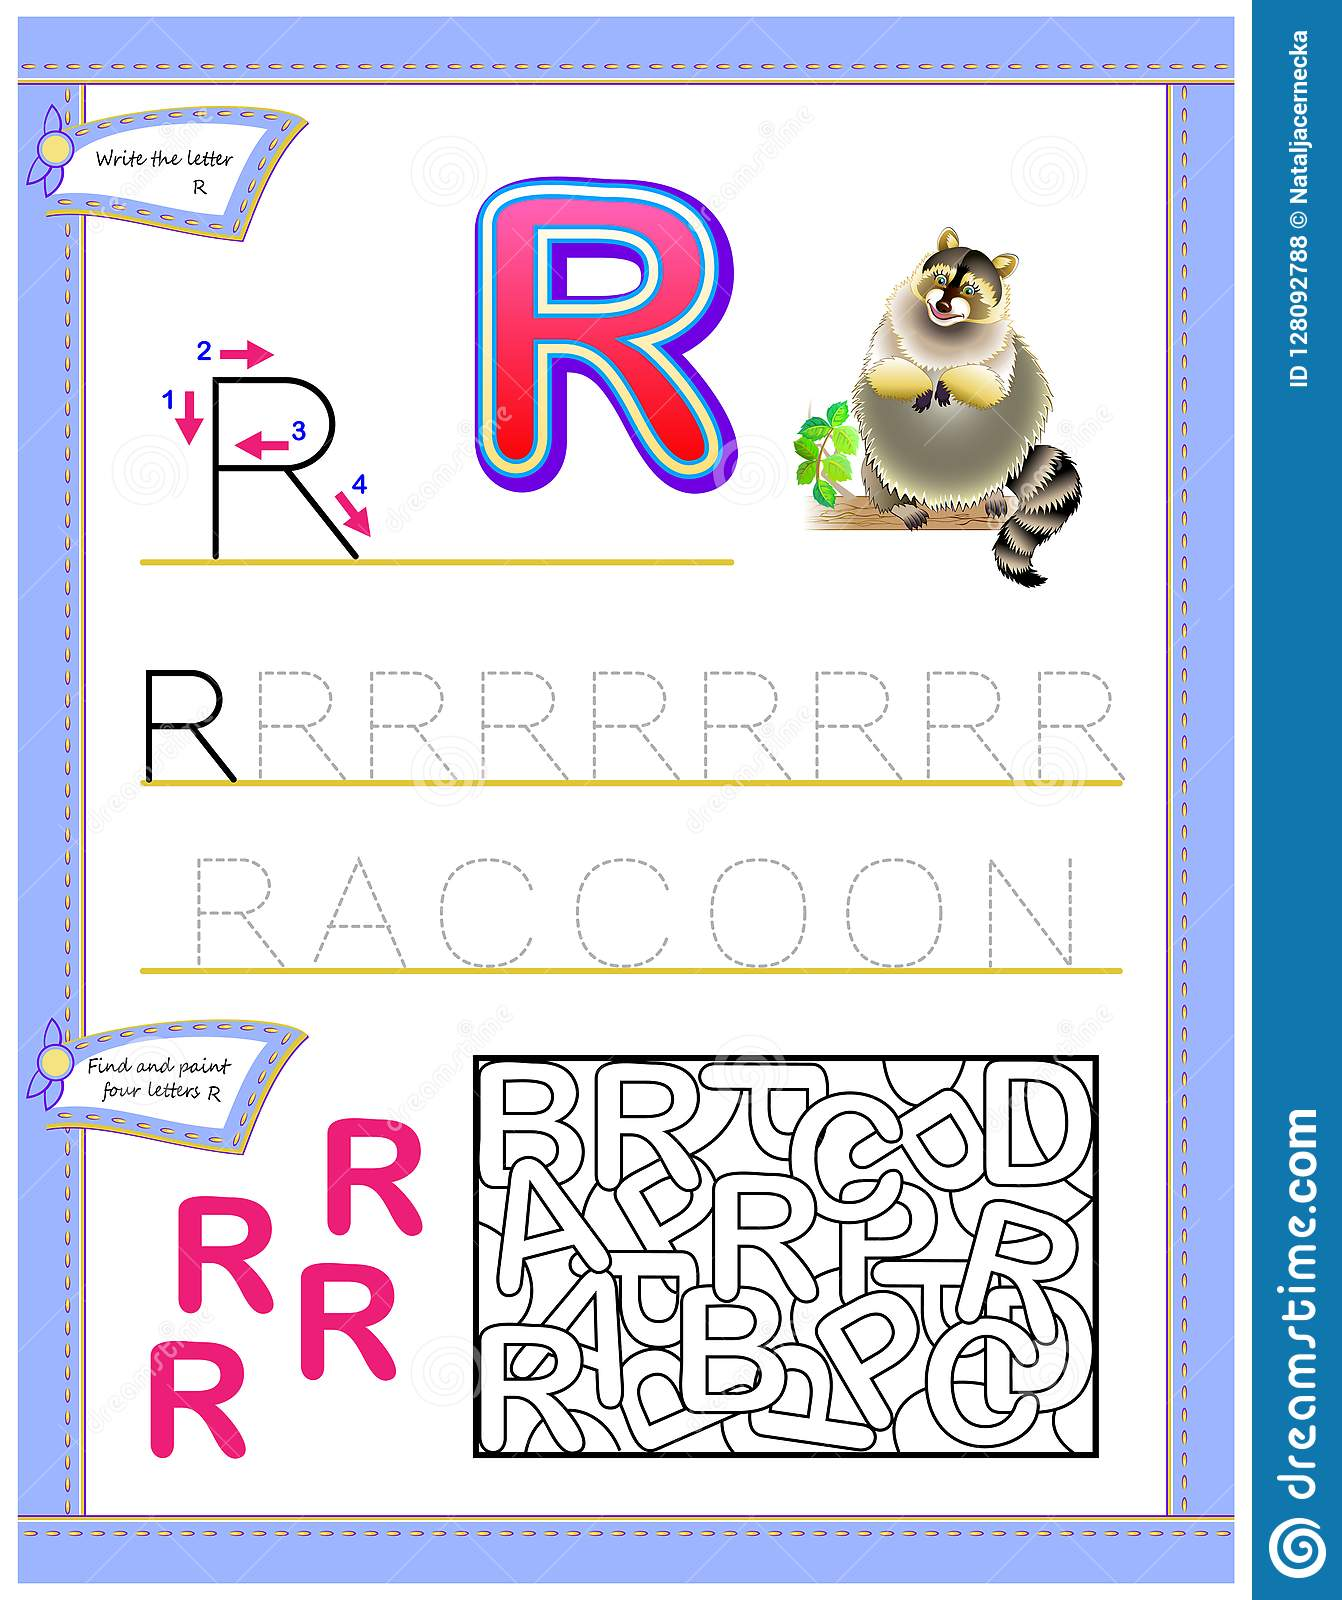 Worksheet For Kids With Letter R For Study English